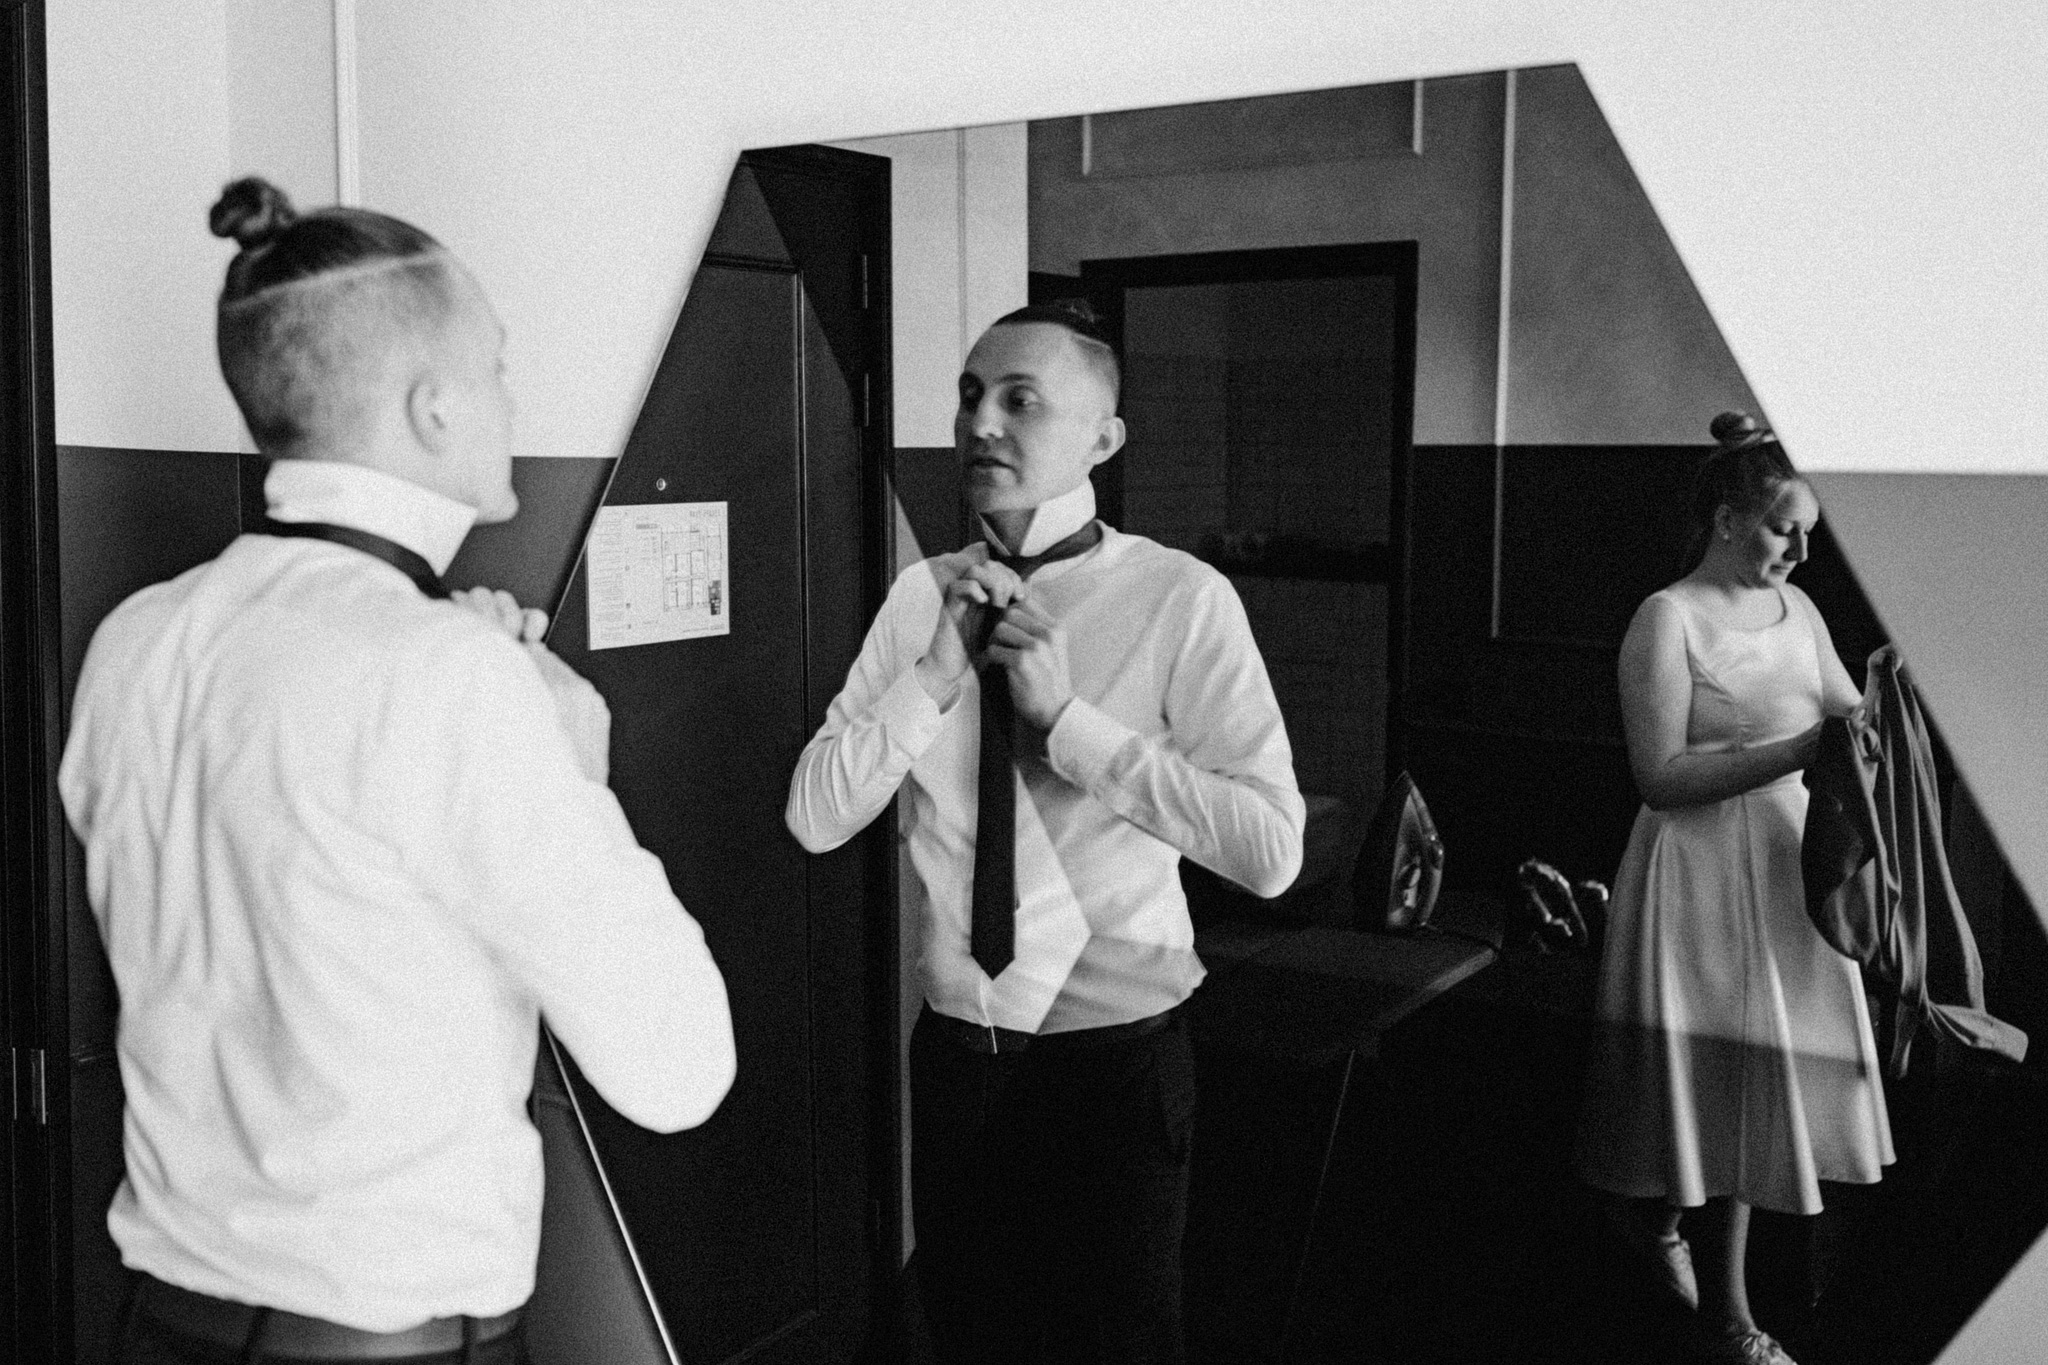 Groom tying his tie with bride in the mirror